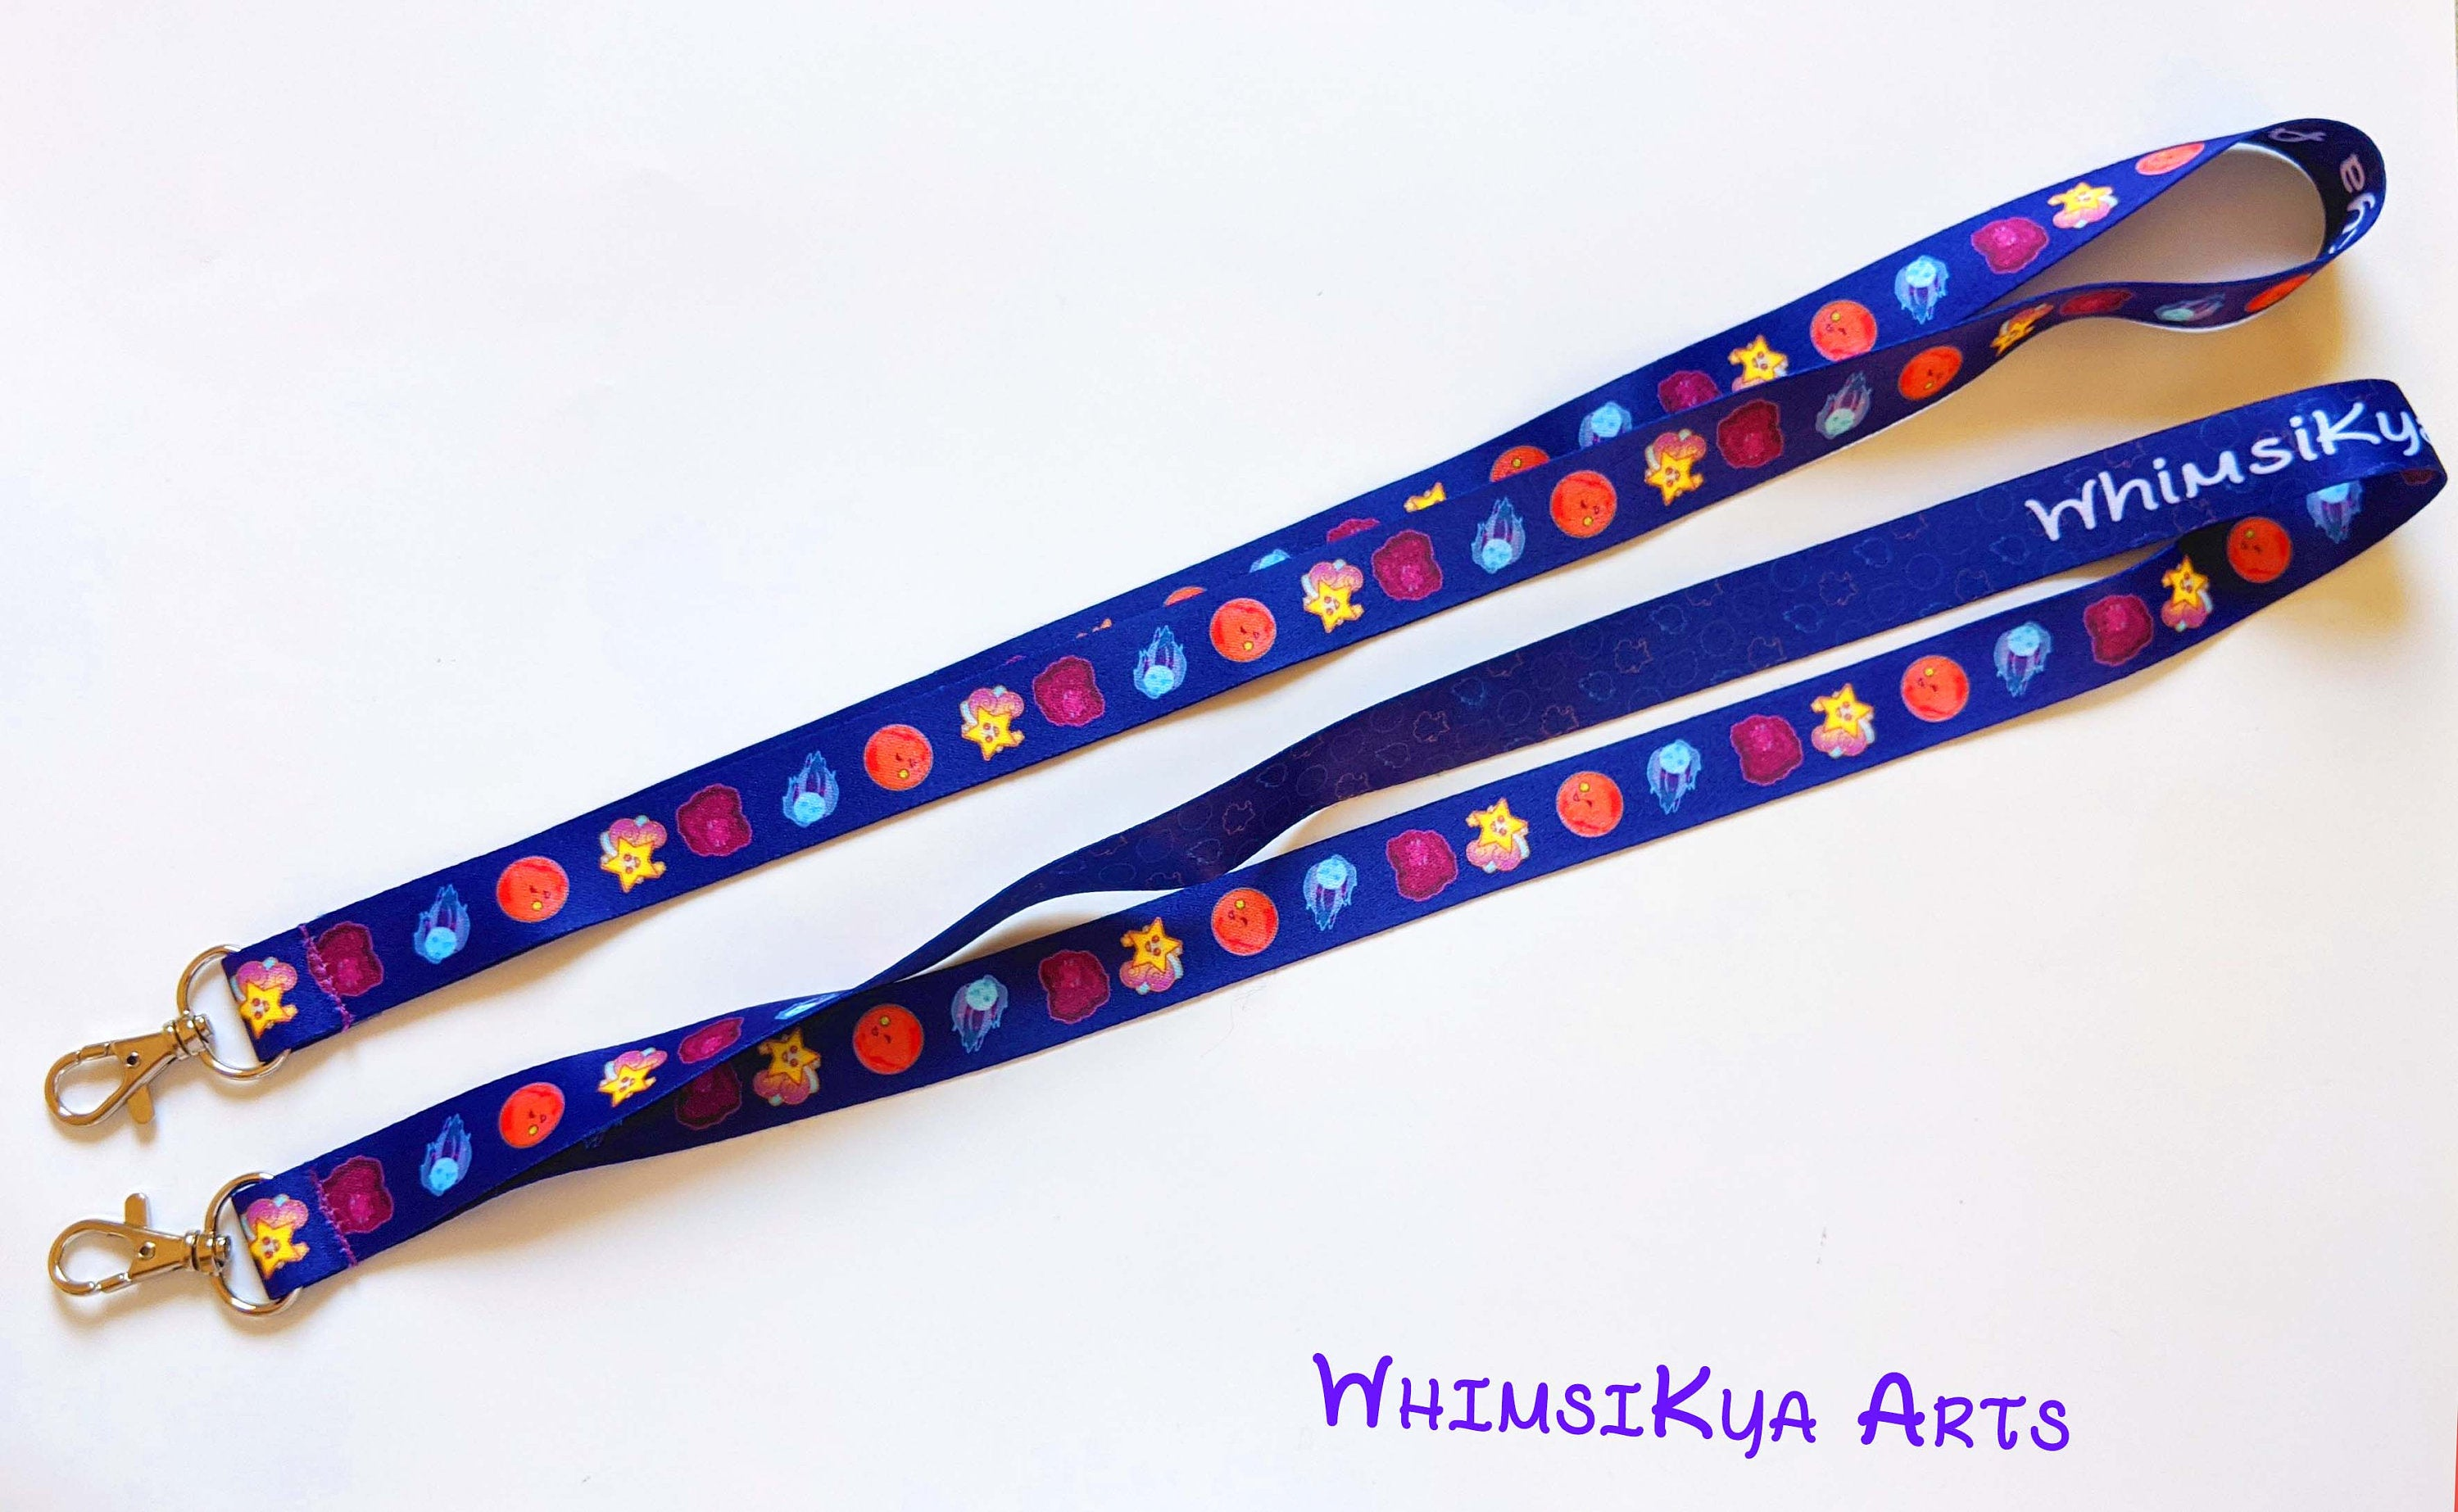 Celestial Cuties Patterned Lanyards